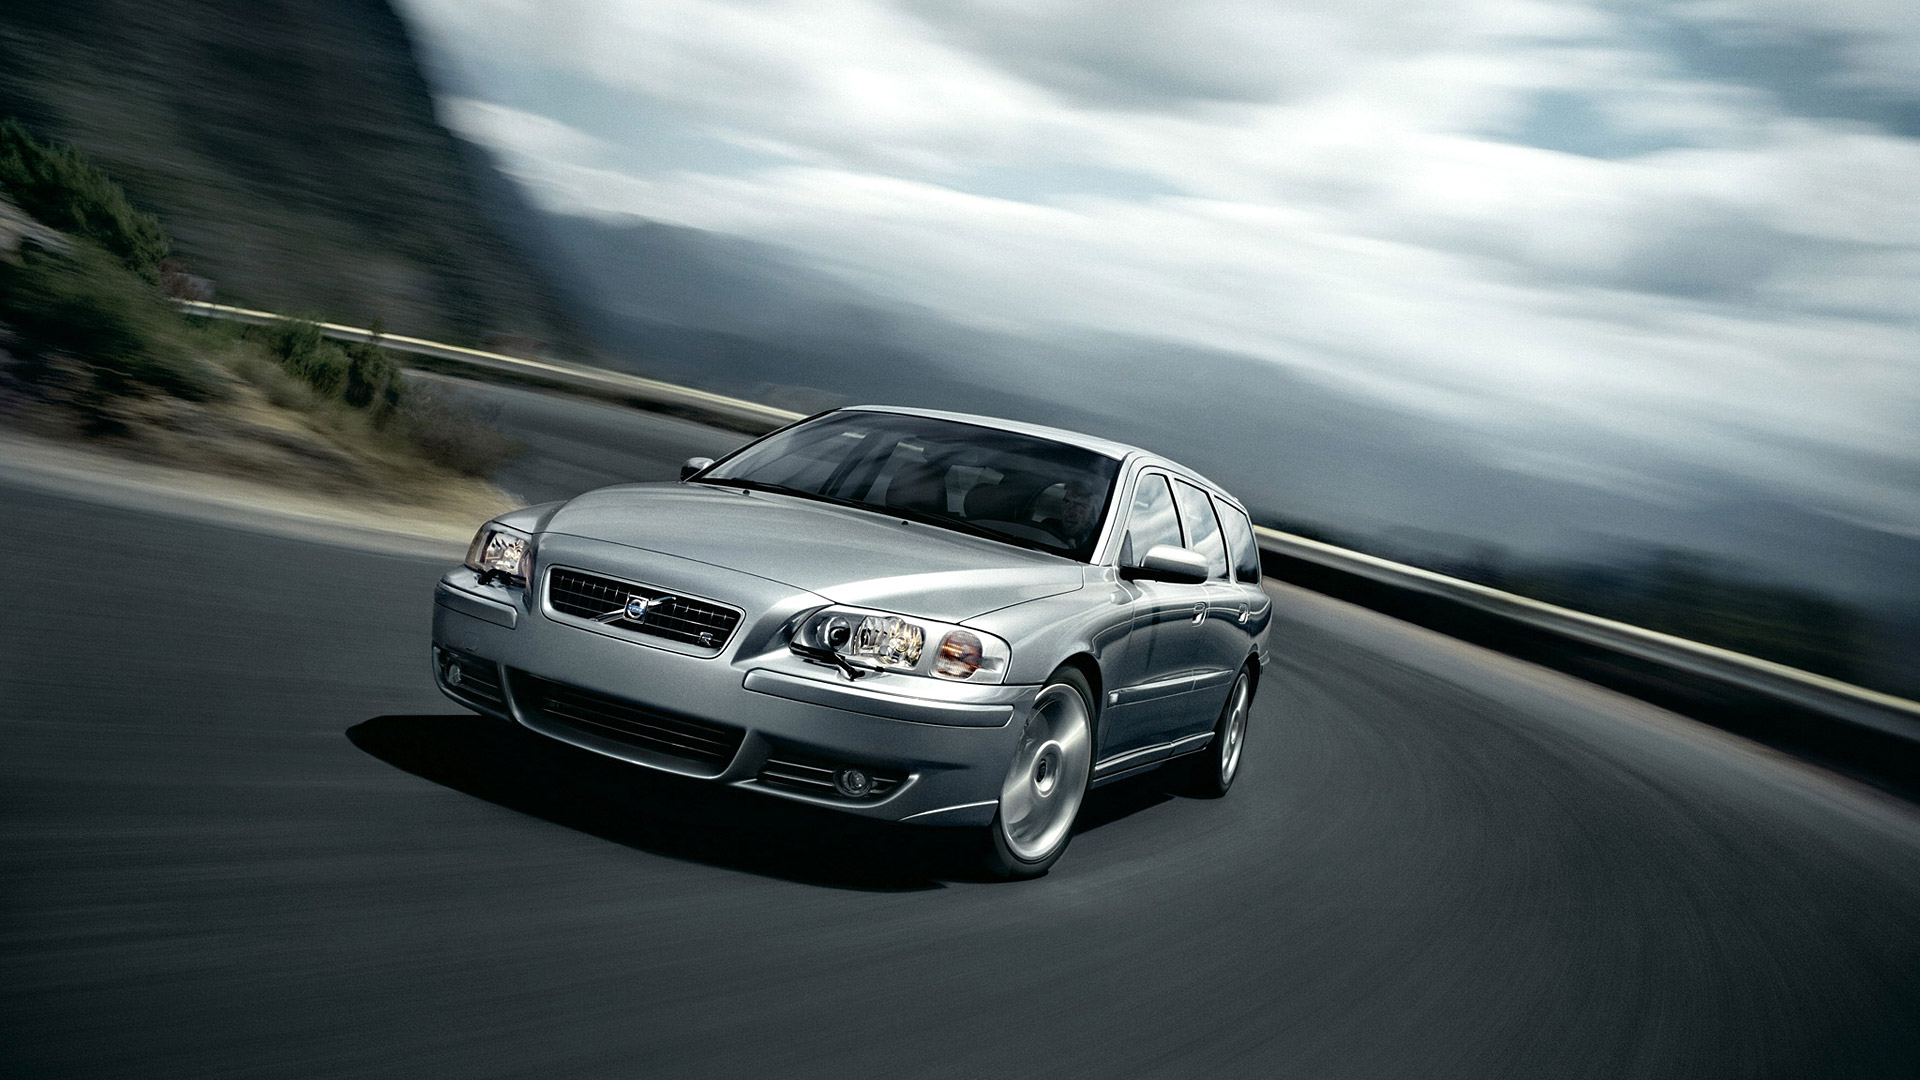 2003 Volvo V70 R Wallpapers HD Images   WSupercars 1920x1080